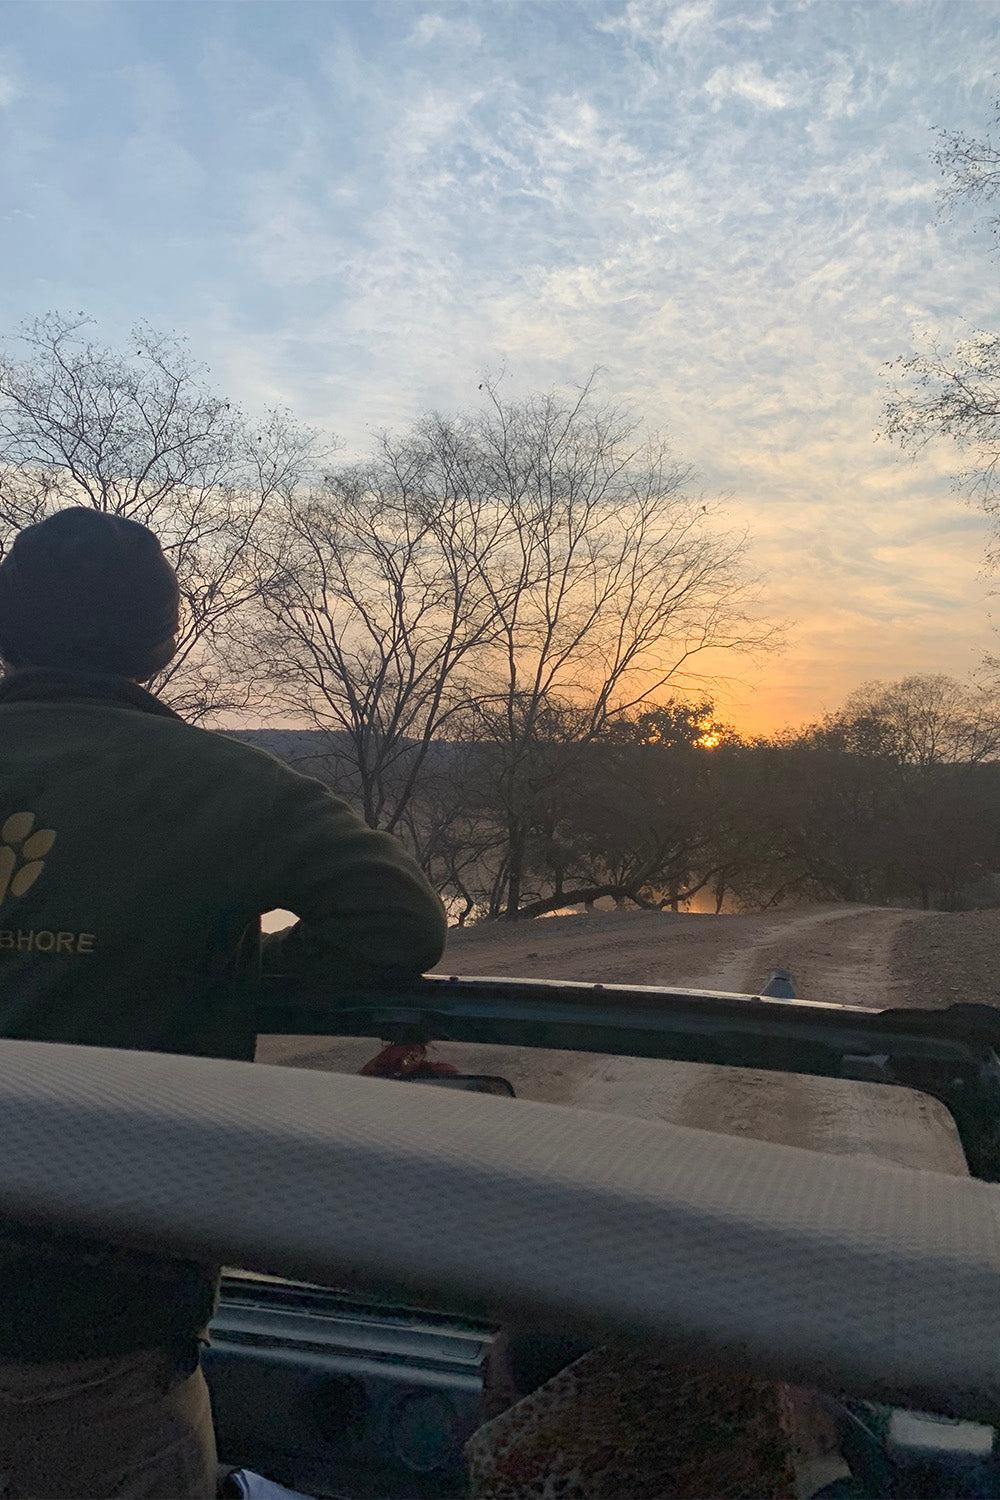 Early Morning with guide at Rathambhore